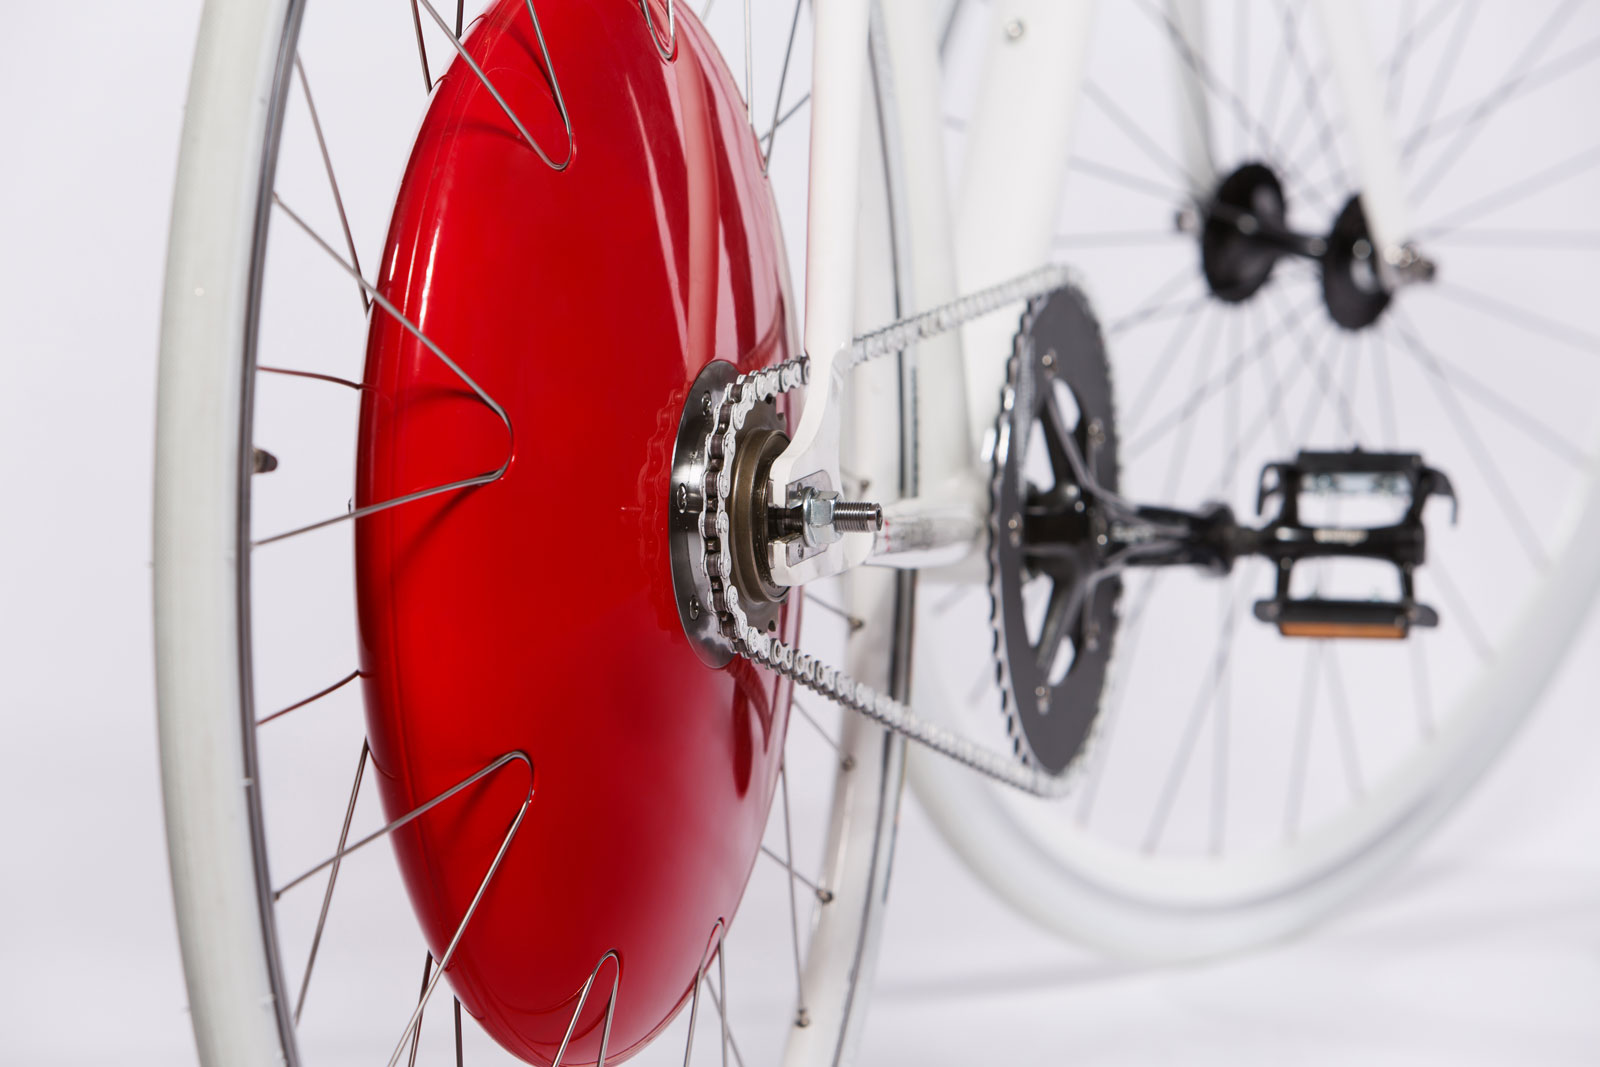 The Copenhagen Wheel from Superpedestrian gives a battery-powered assist to cyclists going uphill and recharges its battery when they're descending or braking.